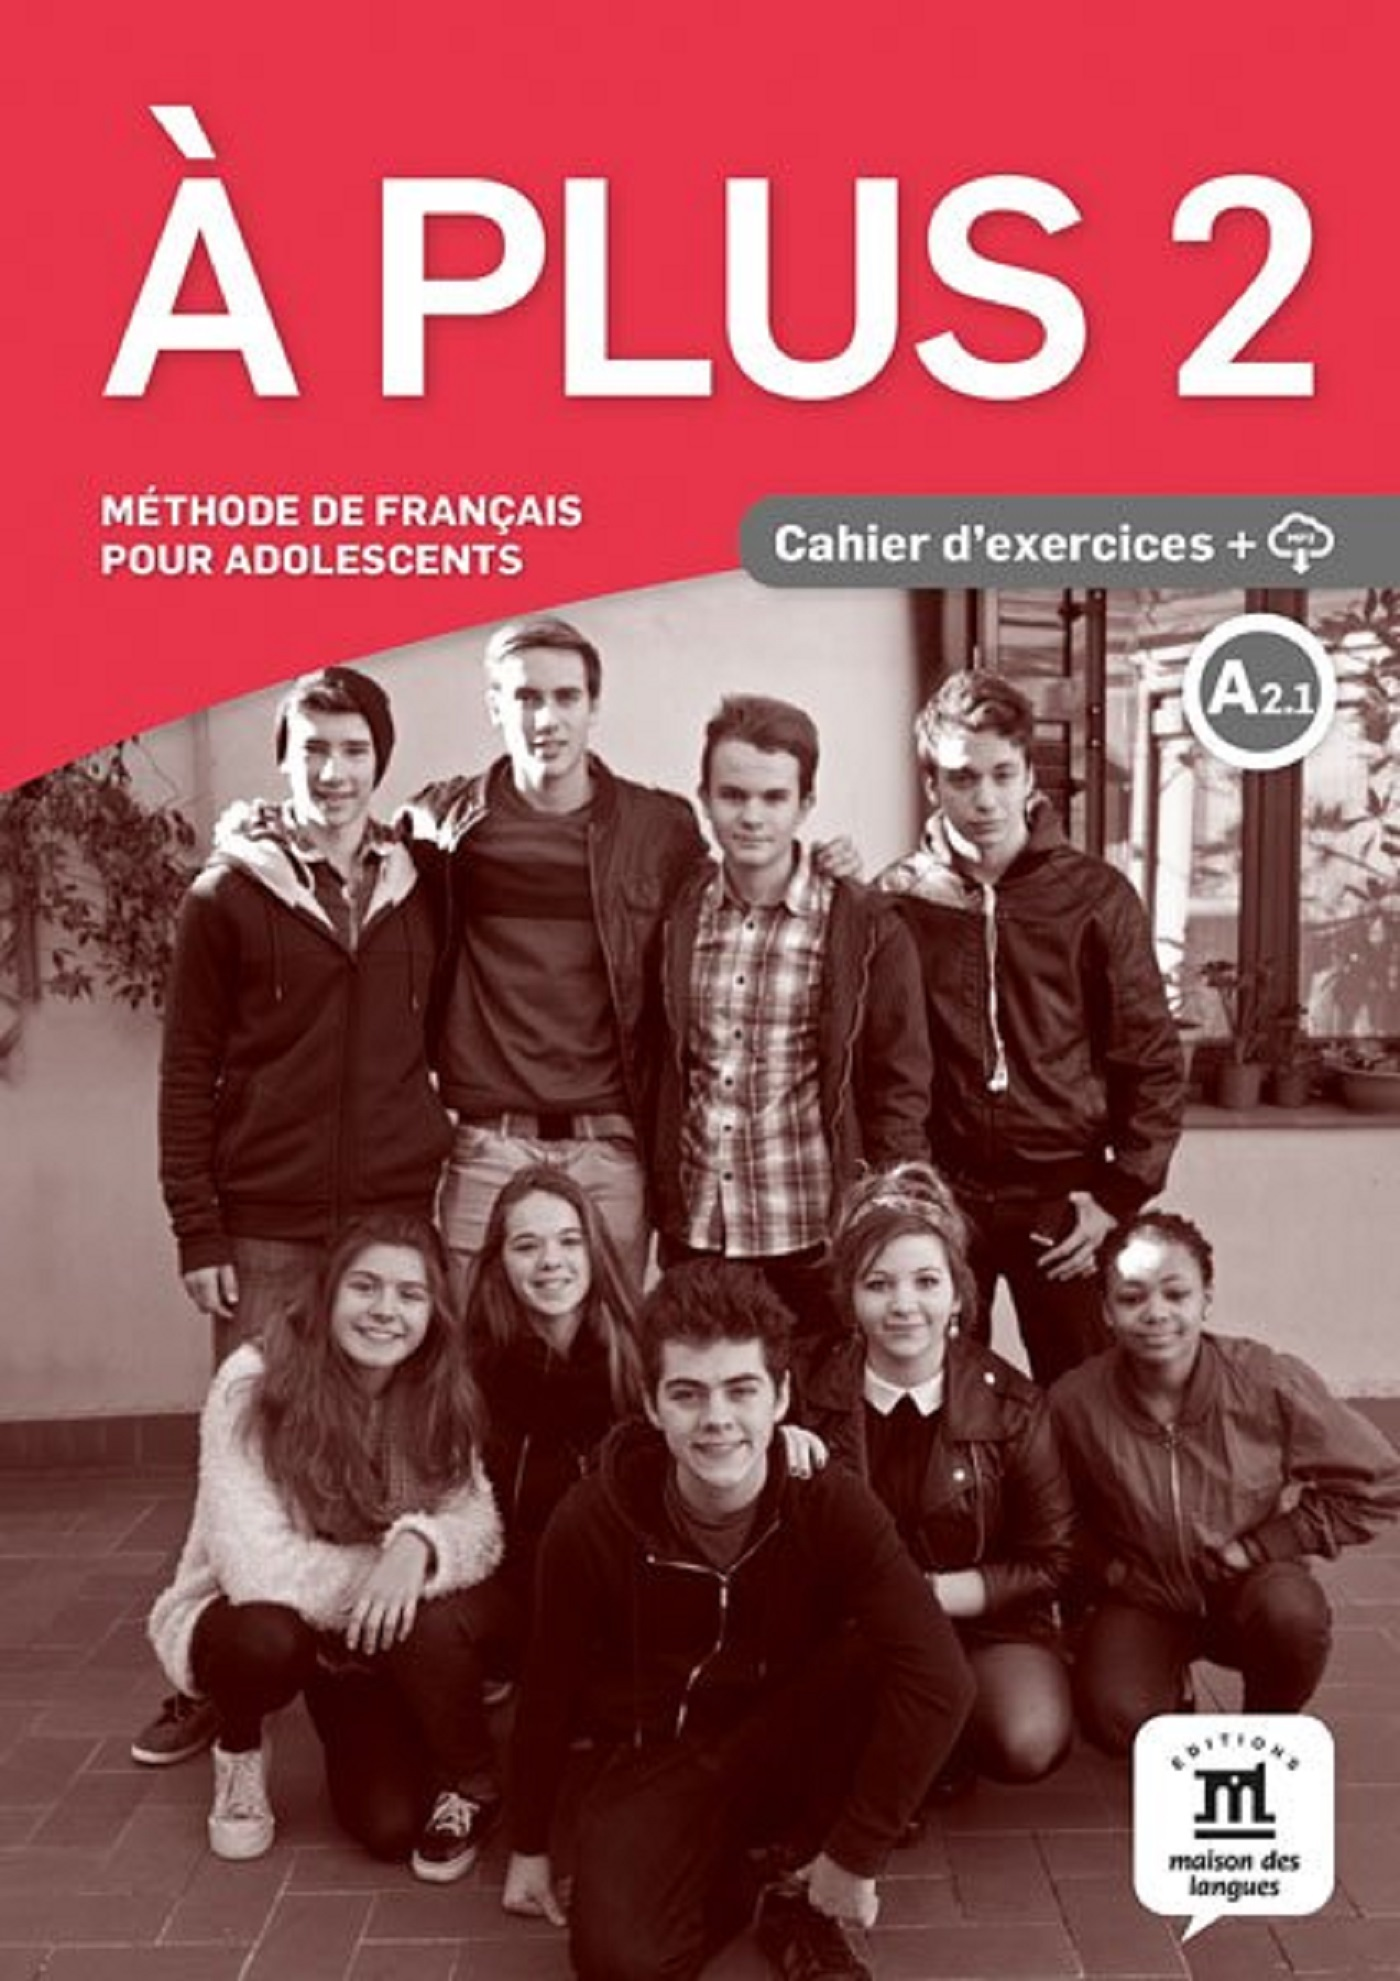 A PLUS ! 2 - CAHIER D'EXERCICES + CD